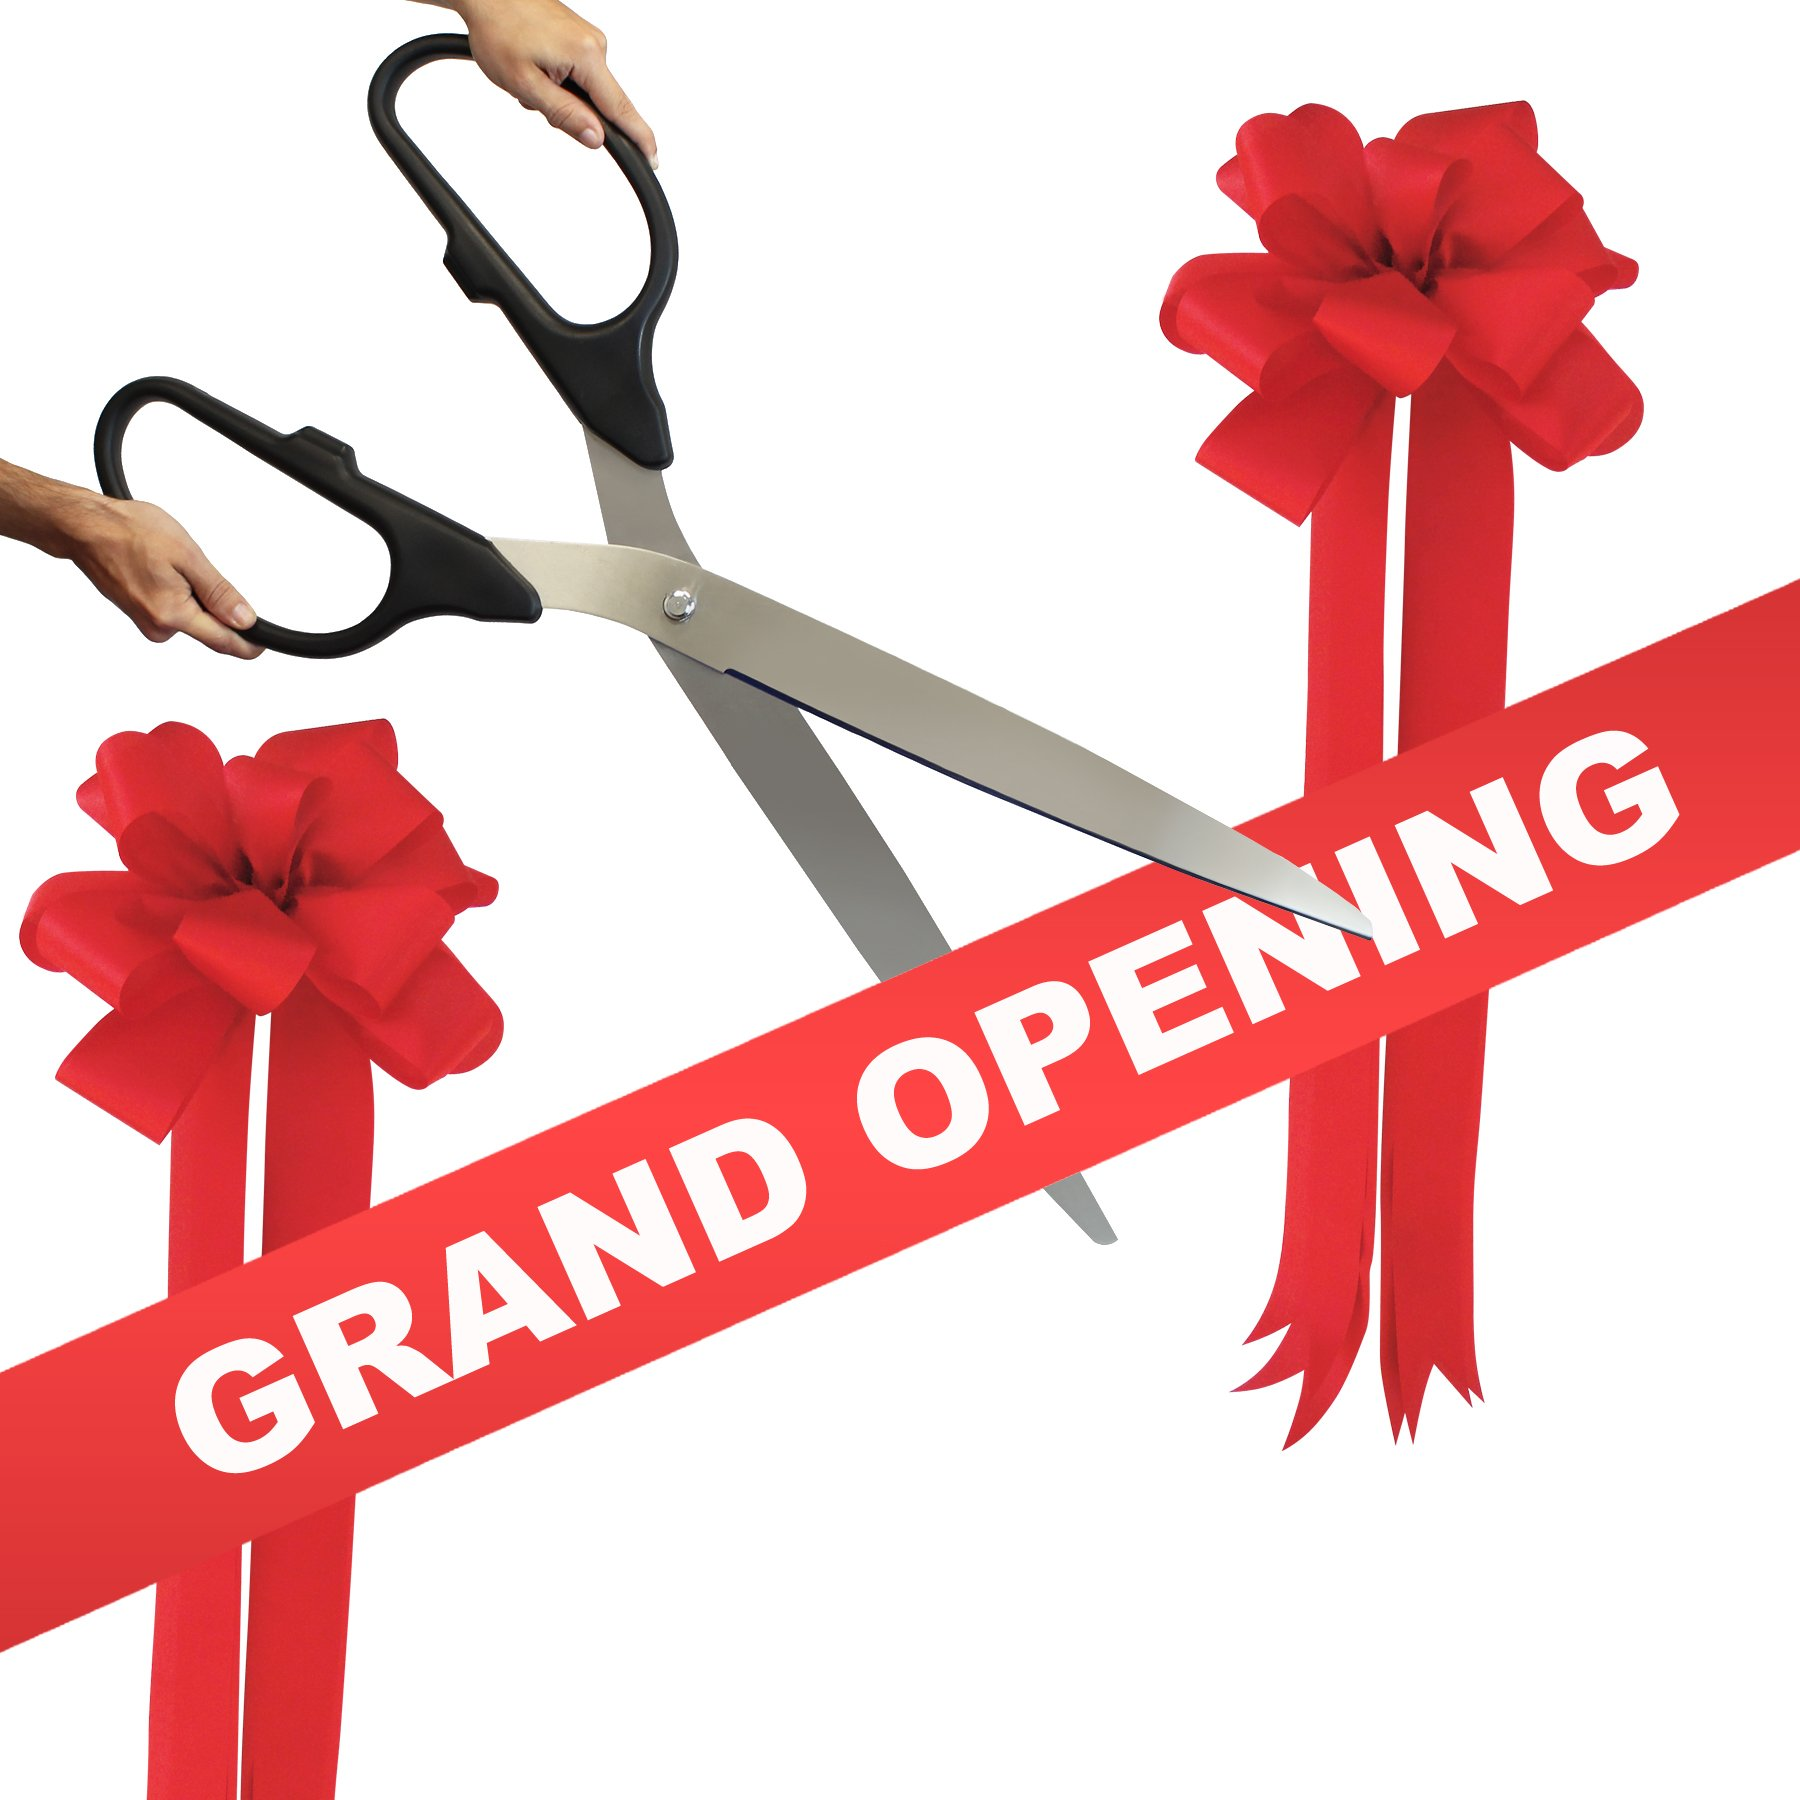 Grand Opening Kit - 36'' Black/Silver Ceremonial Ribbon Cutting Scissors with 5 Yards of 6'' Red Grand Opening Ribbon and 2 Red Bows by Engraving, Awards & Gifts